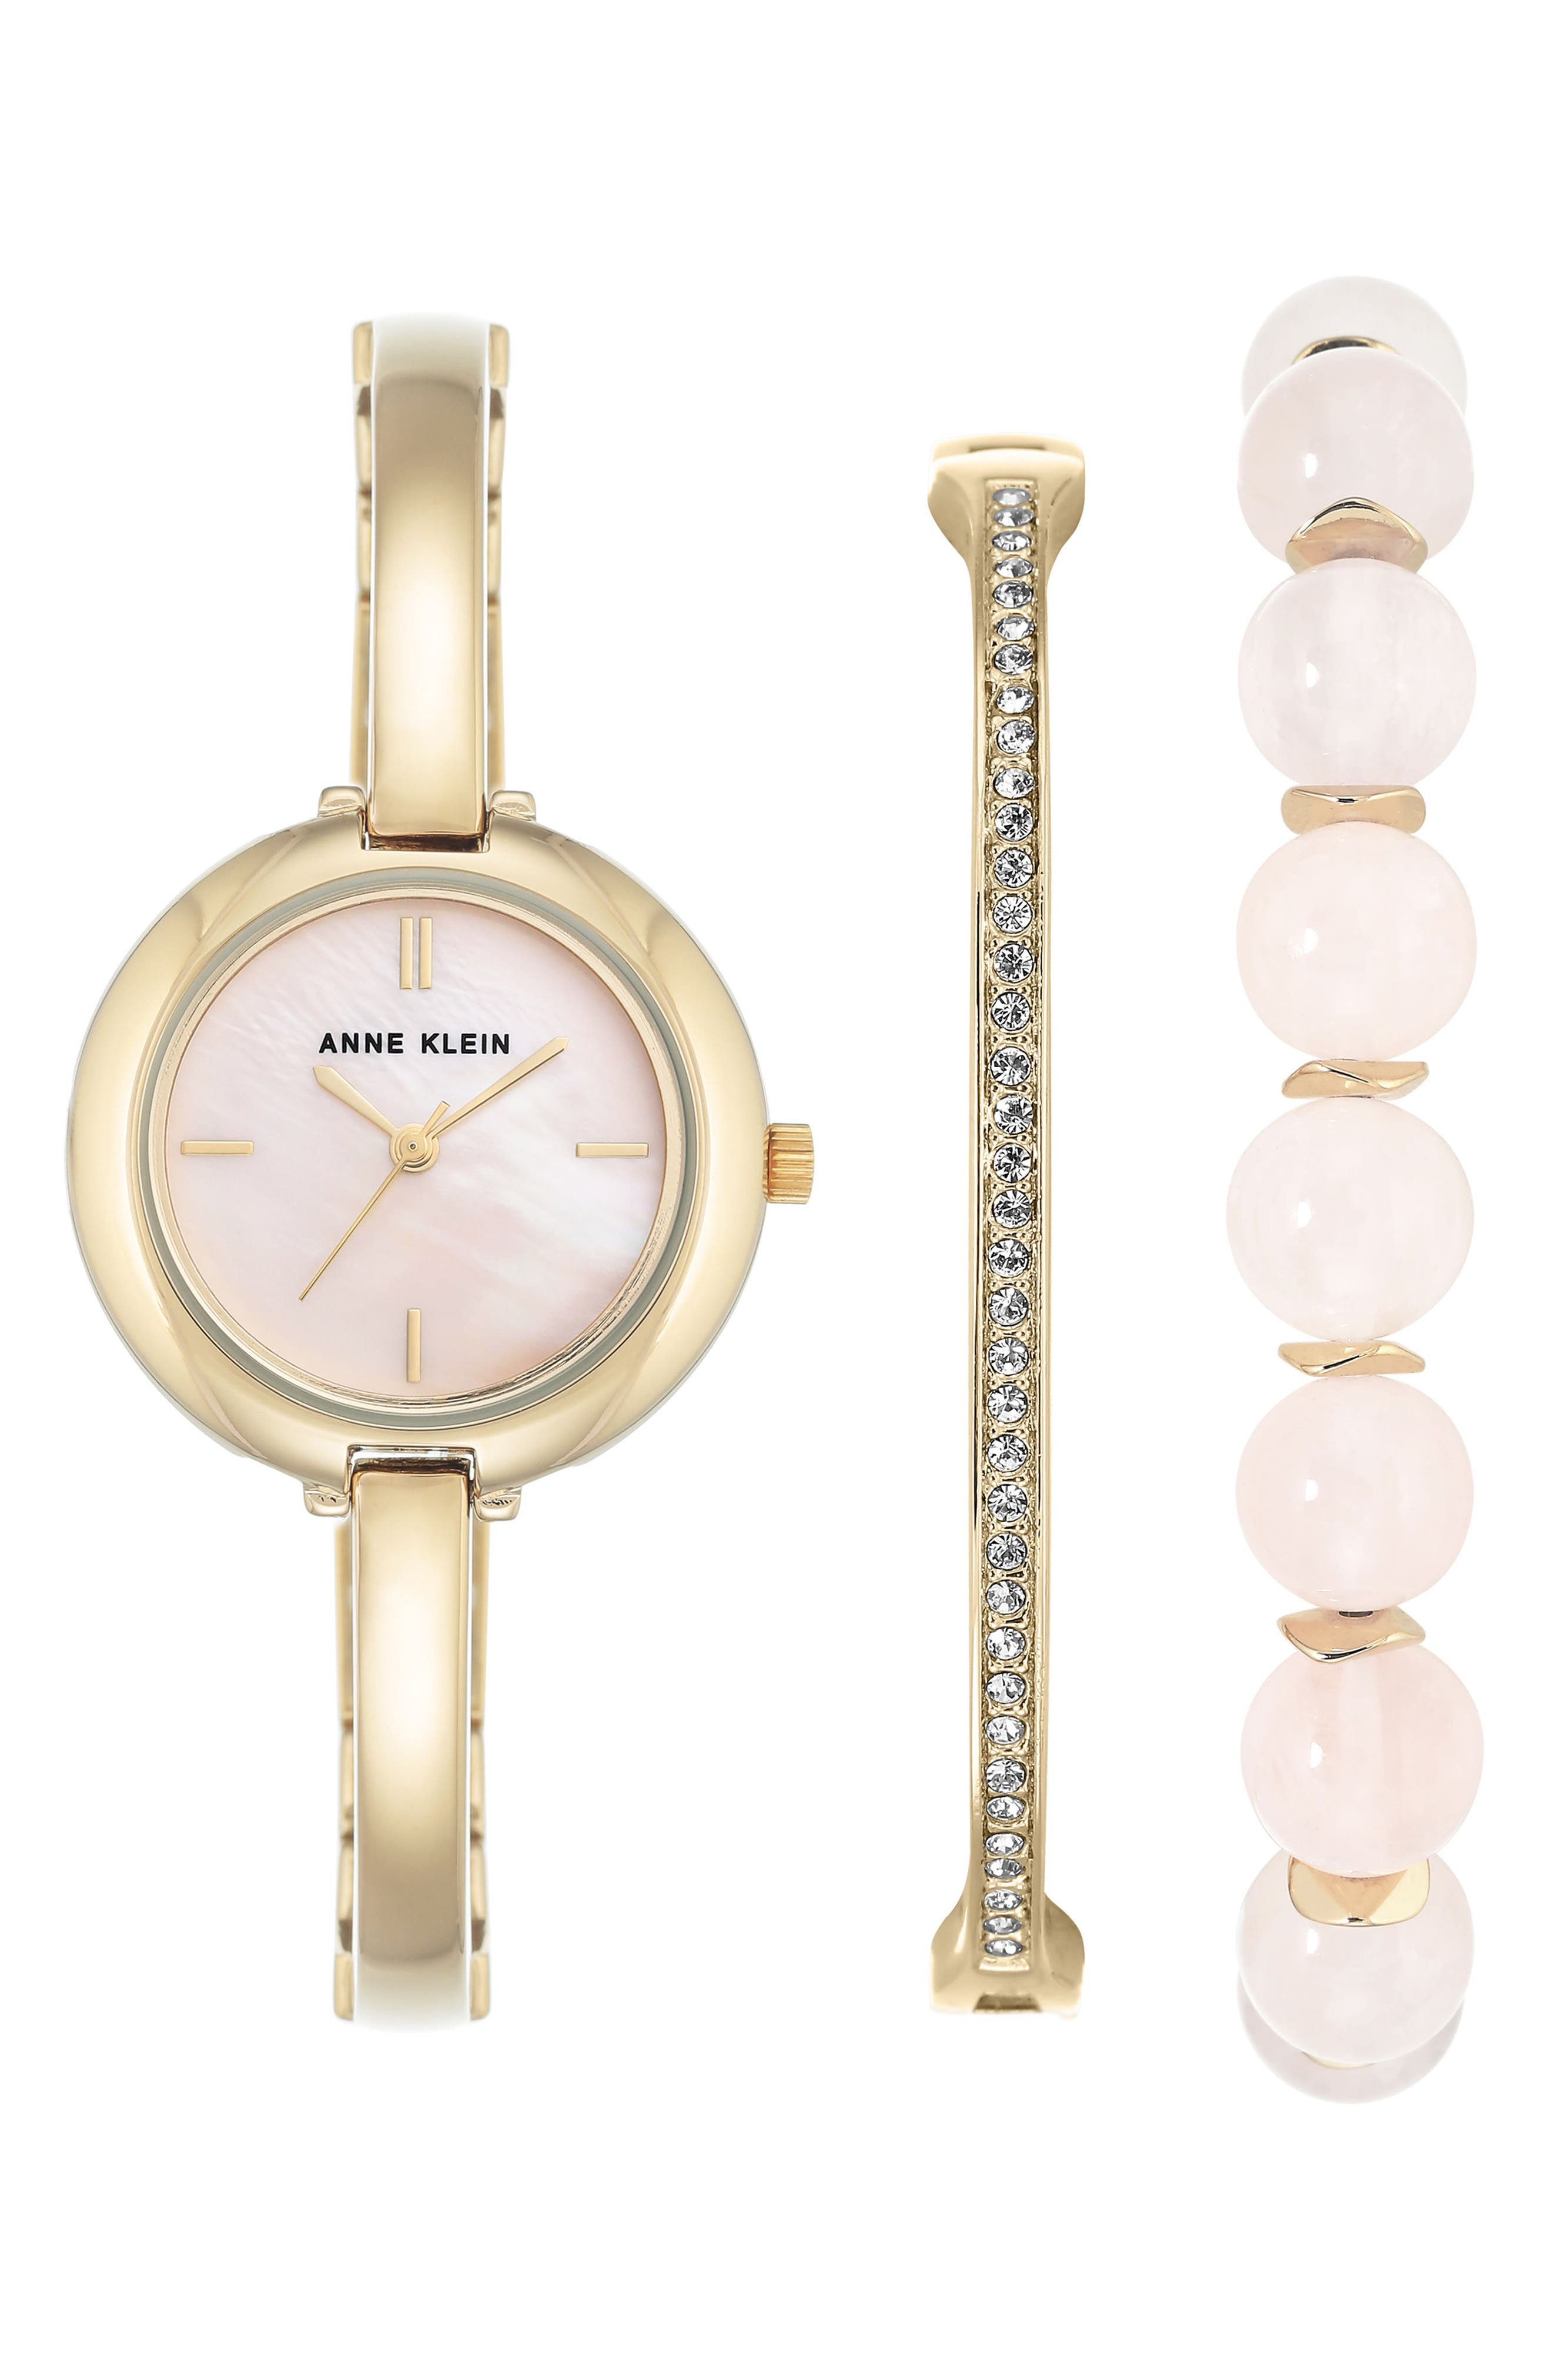 Anne Klein Bracelet Watch & Bangle Set